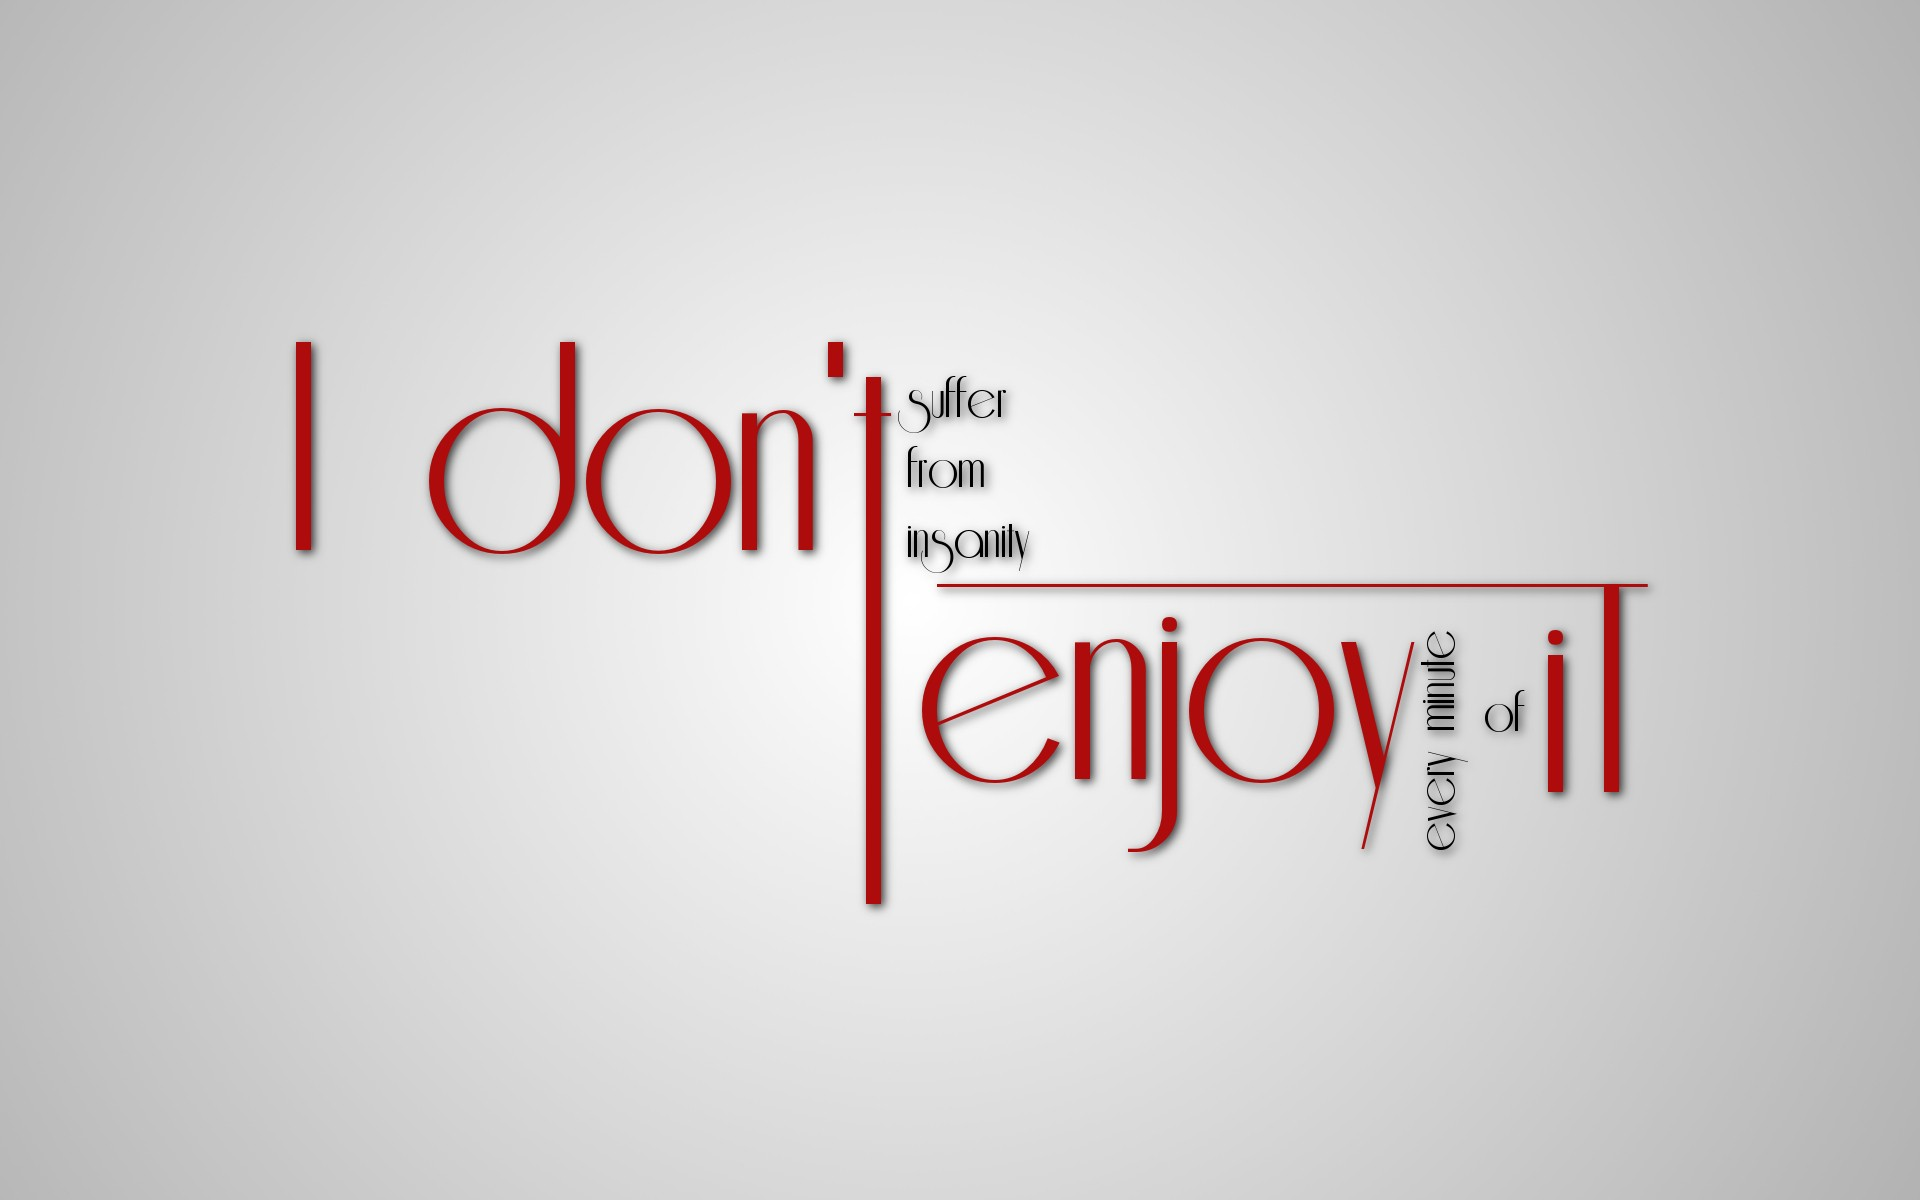 minimalistic text quotes typography white background